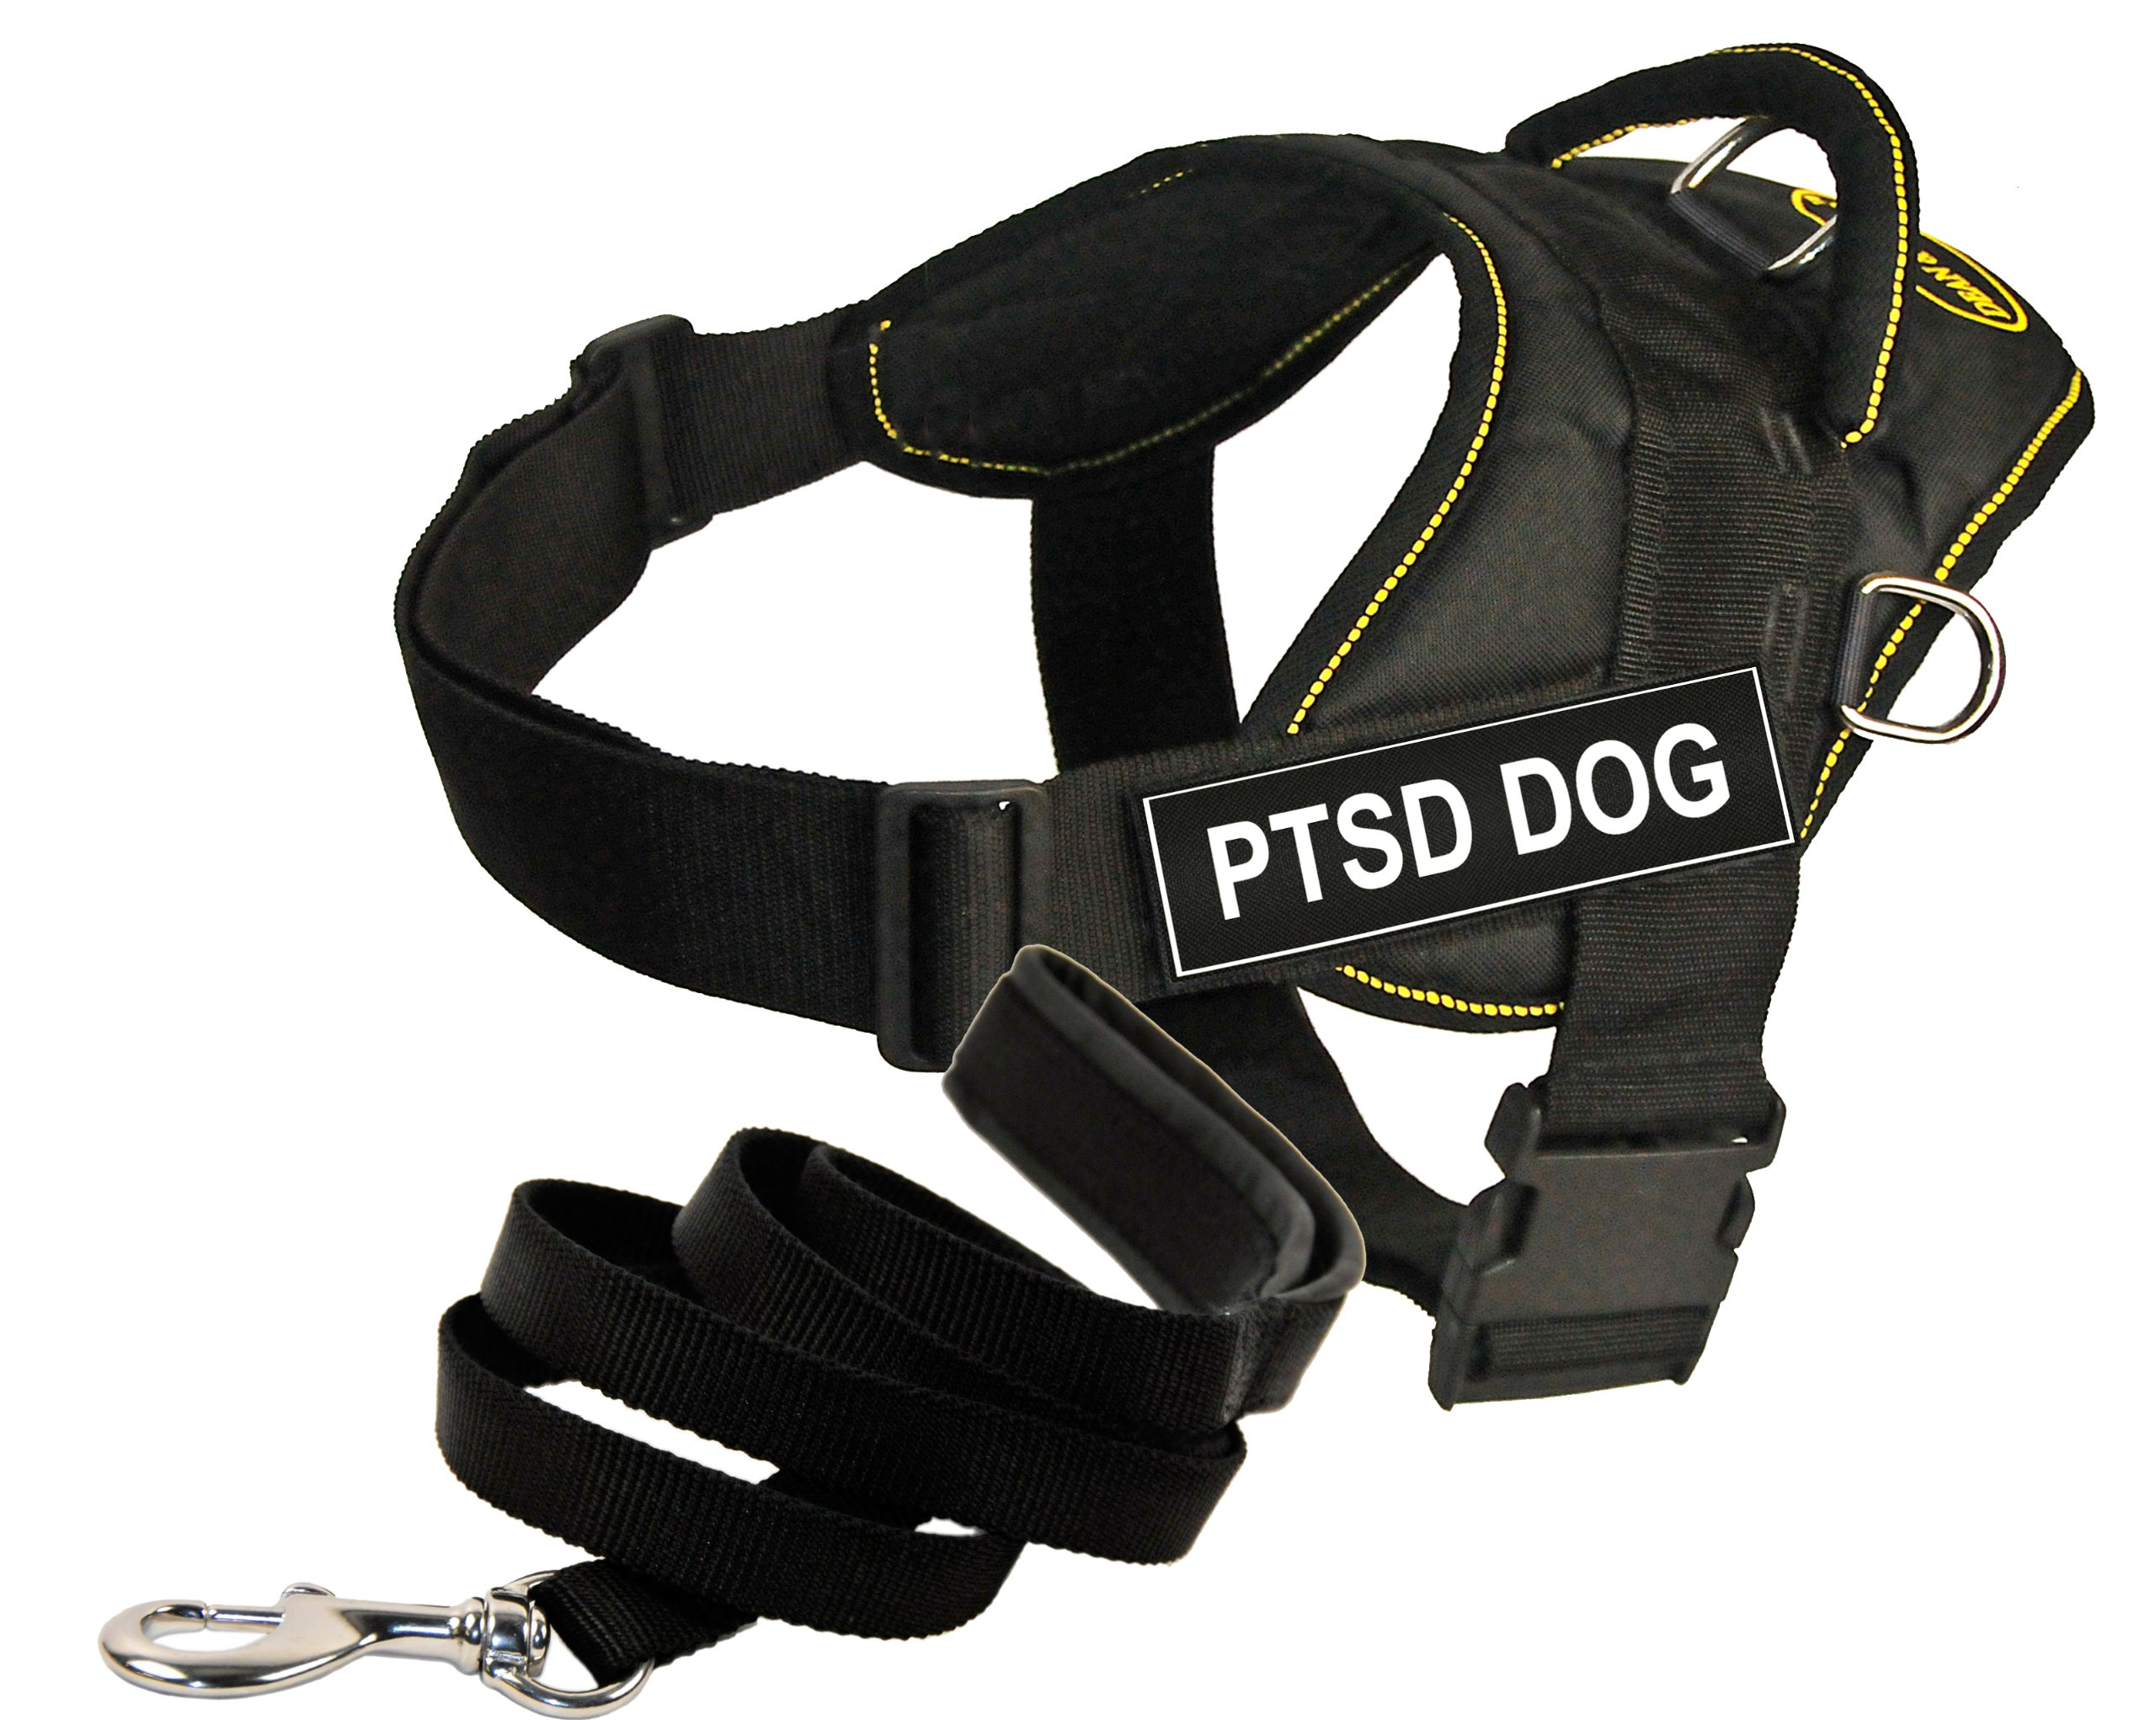 Dean and Tyler Bundle - One ''DT Fun Works'' Harness, PTSD Dog, Yellow Trim, Large (32'' - 42'') + One ''Padded Puppy'' Leash, 6 FT Stainless Snap - Black